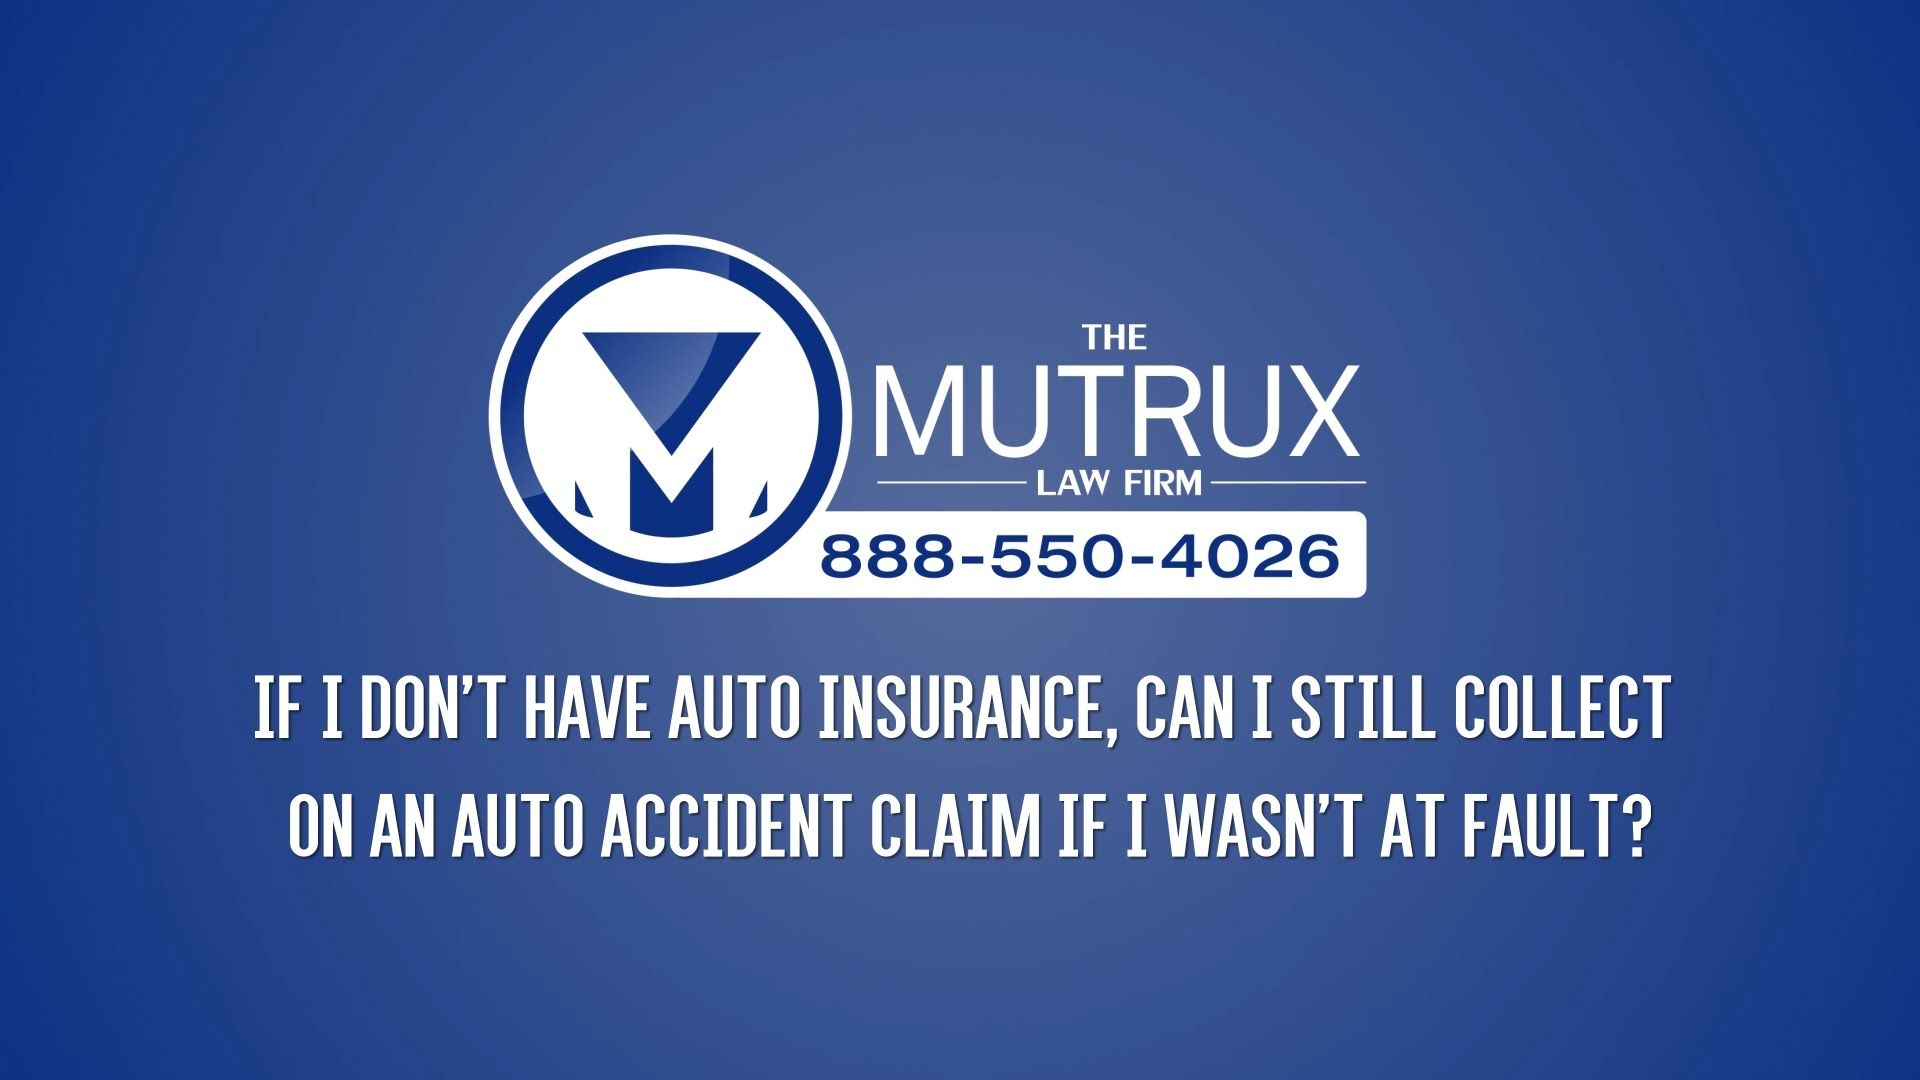 If i dont have auto insurance can i still collect on an